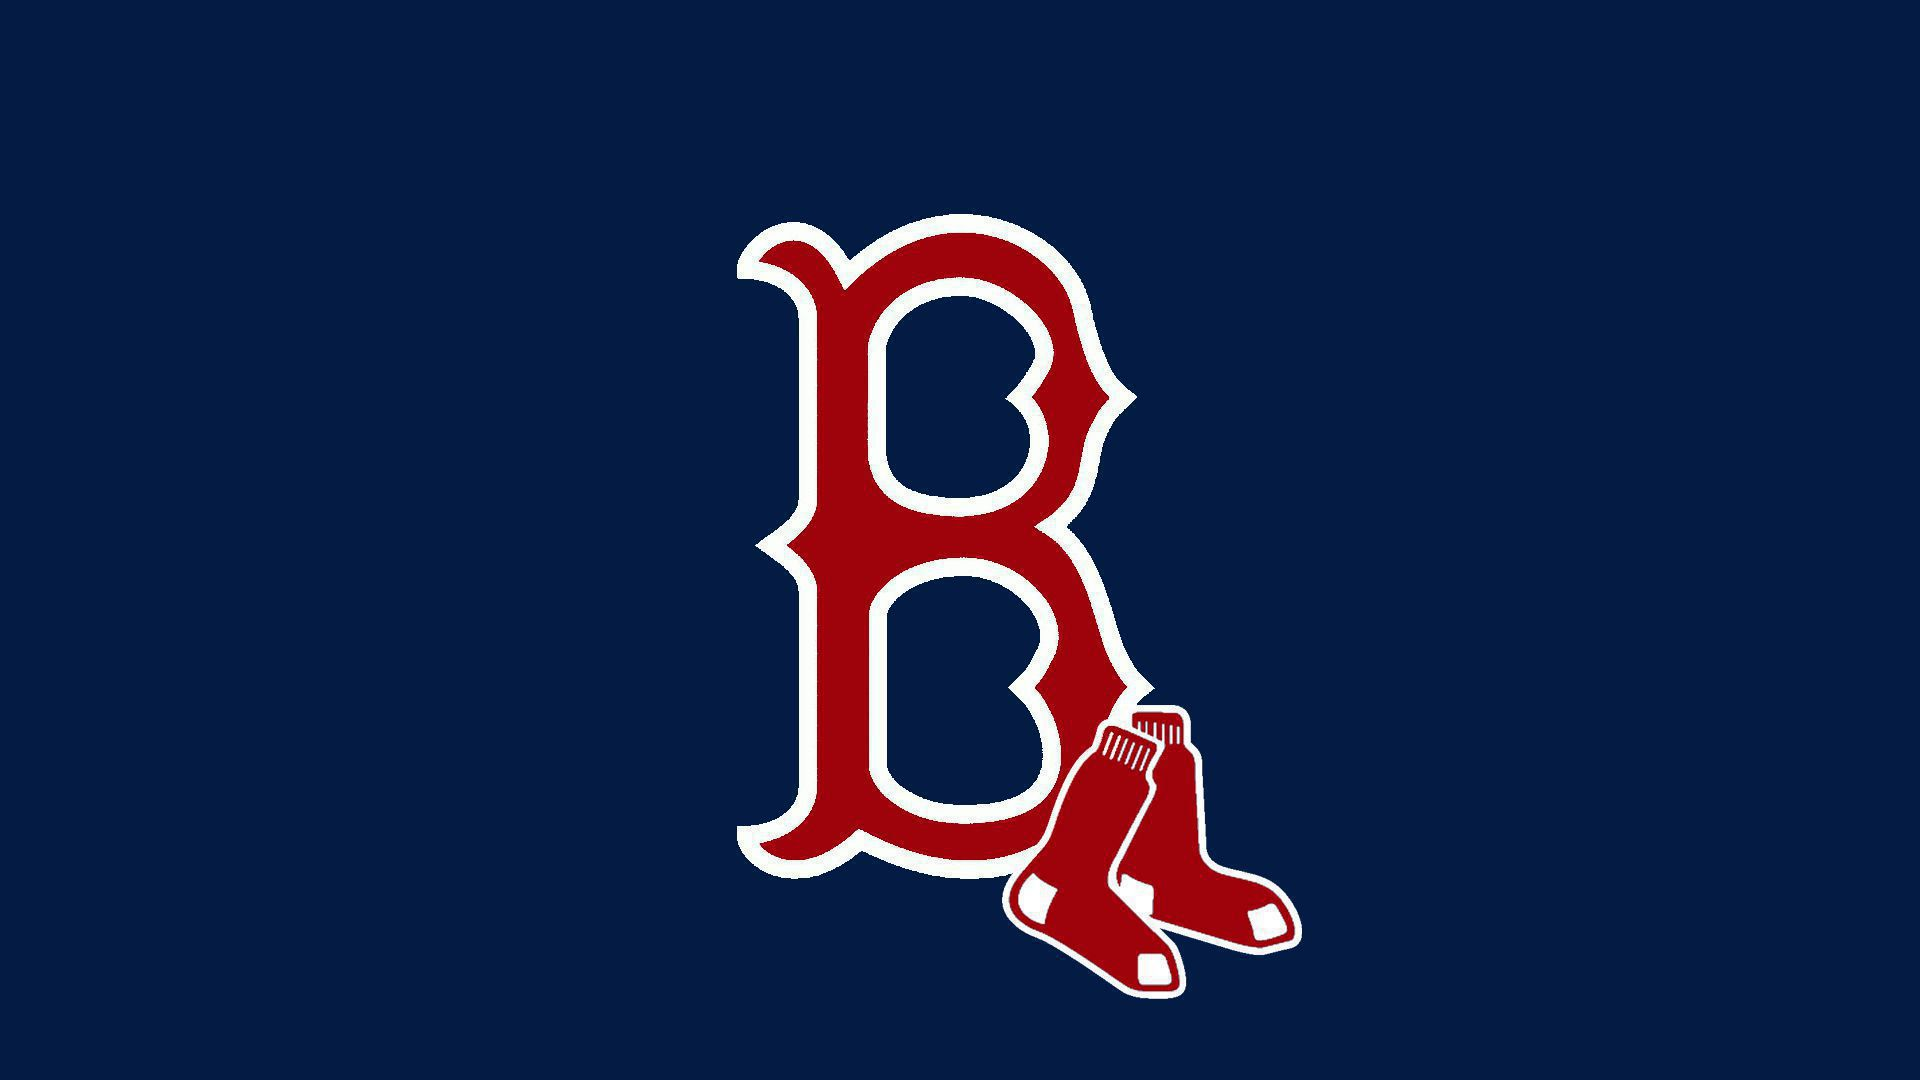 Boston Red Sox Wallpaper Pack